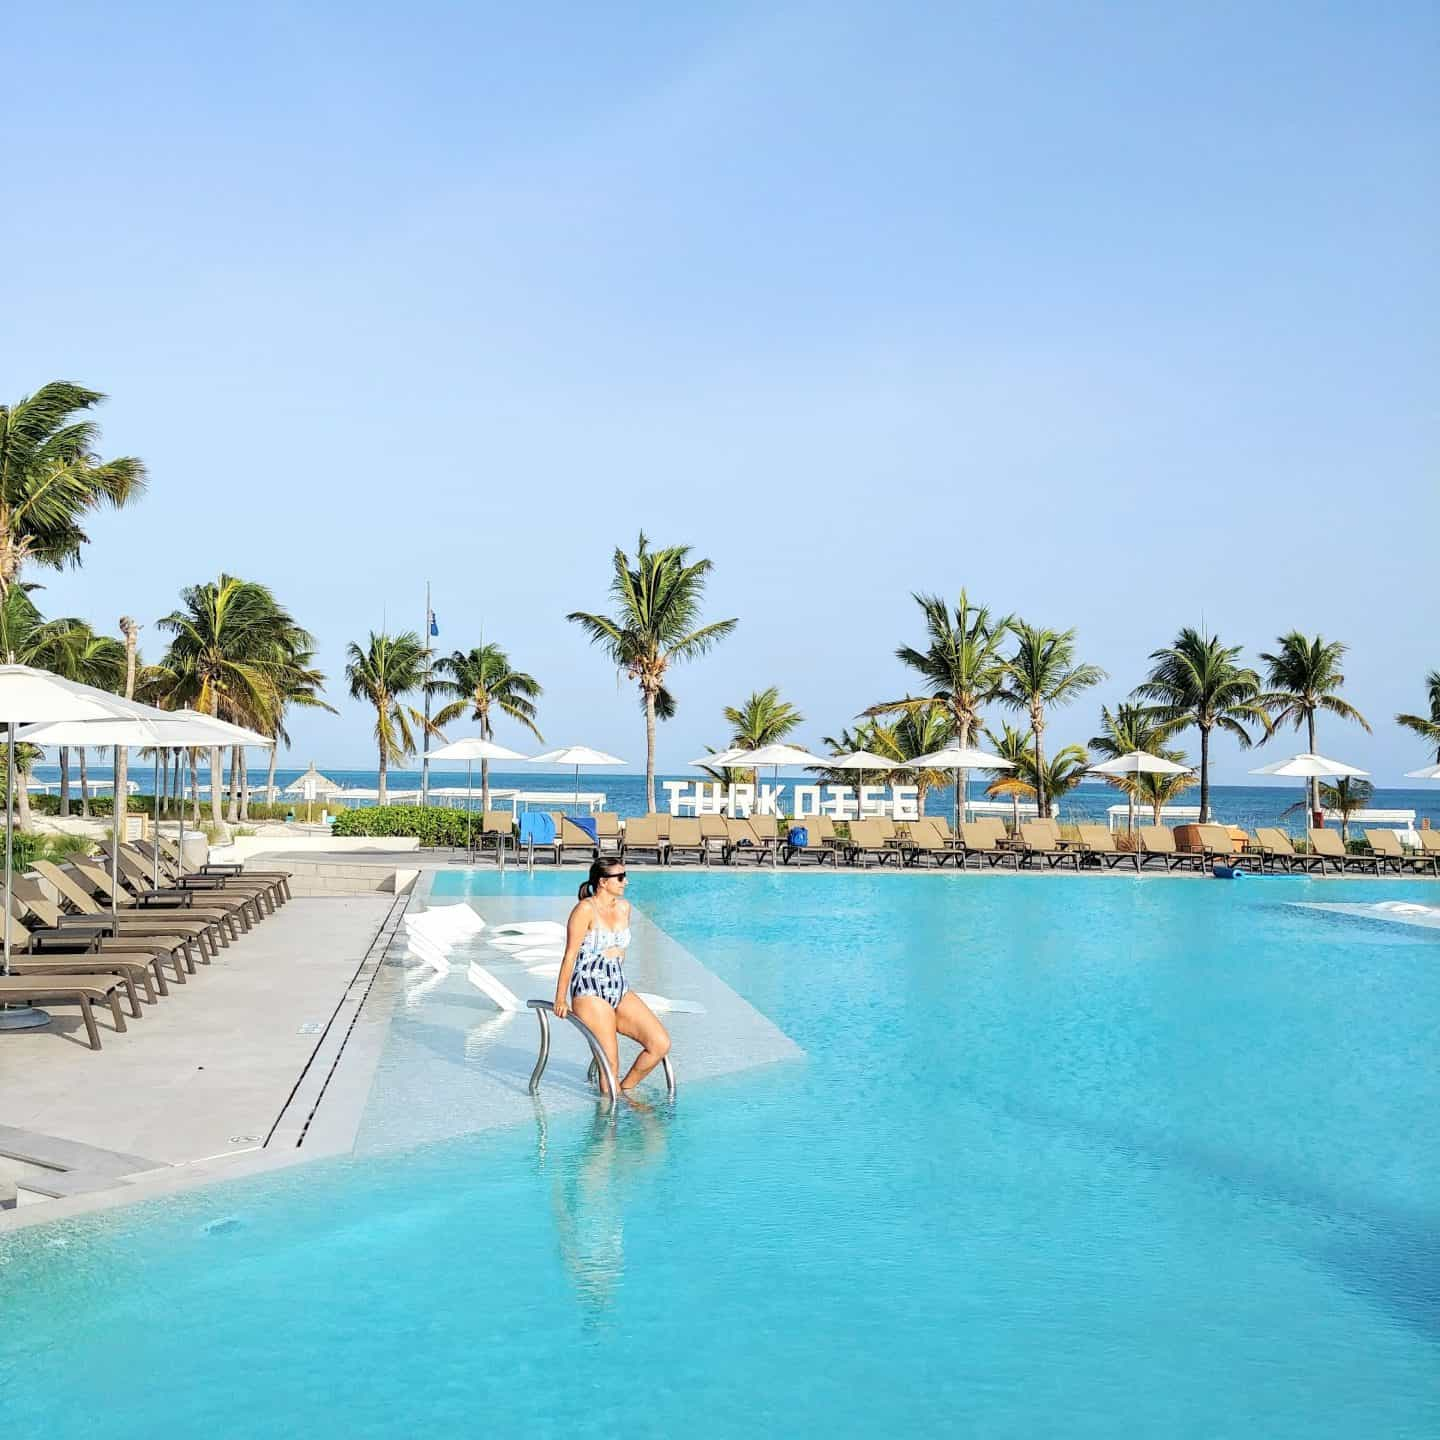 Club Med Turks and Caicos Pool